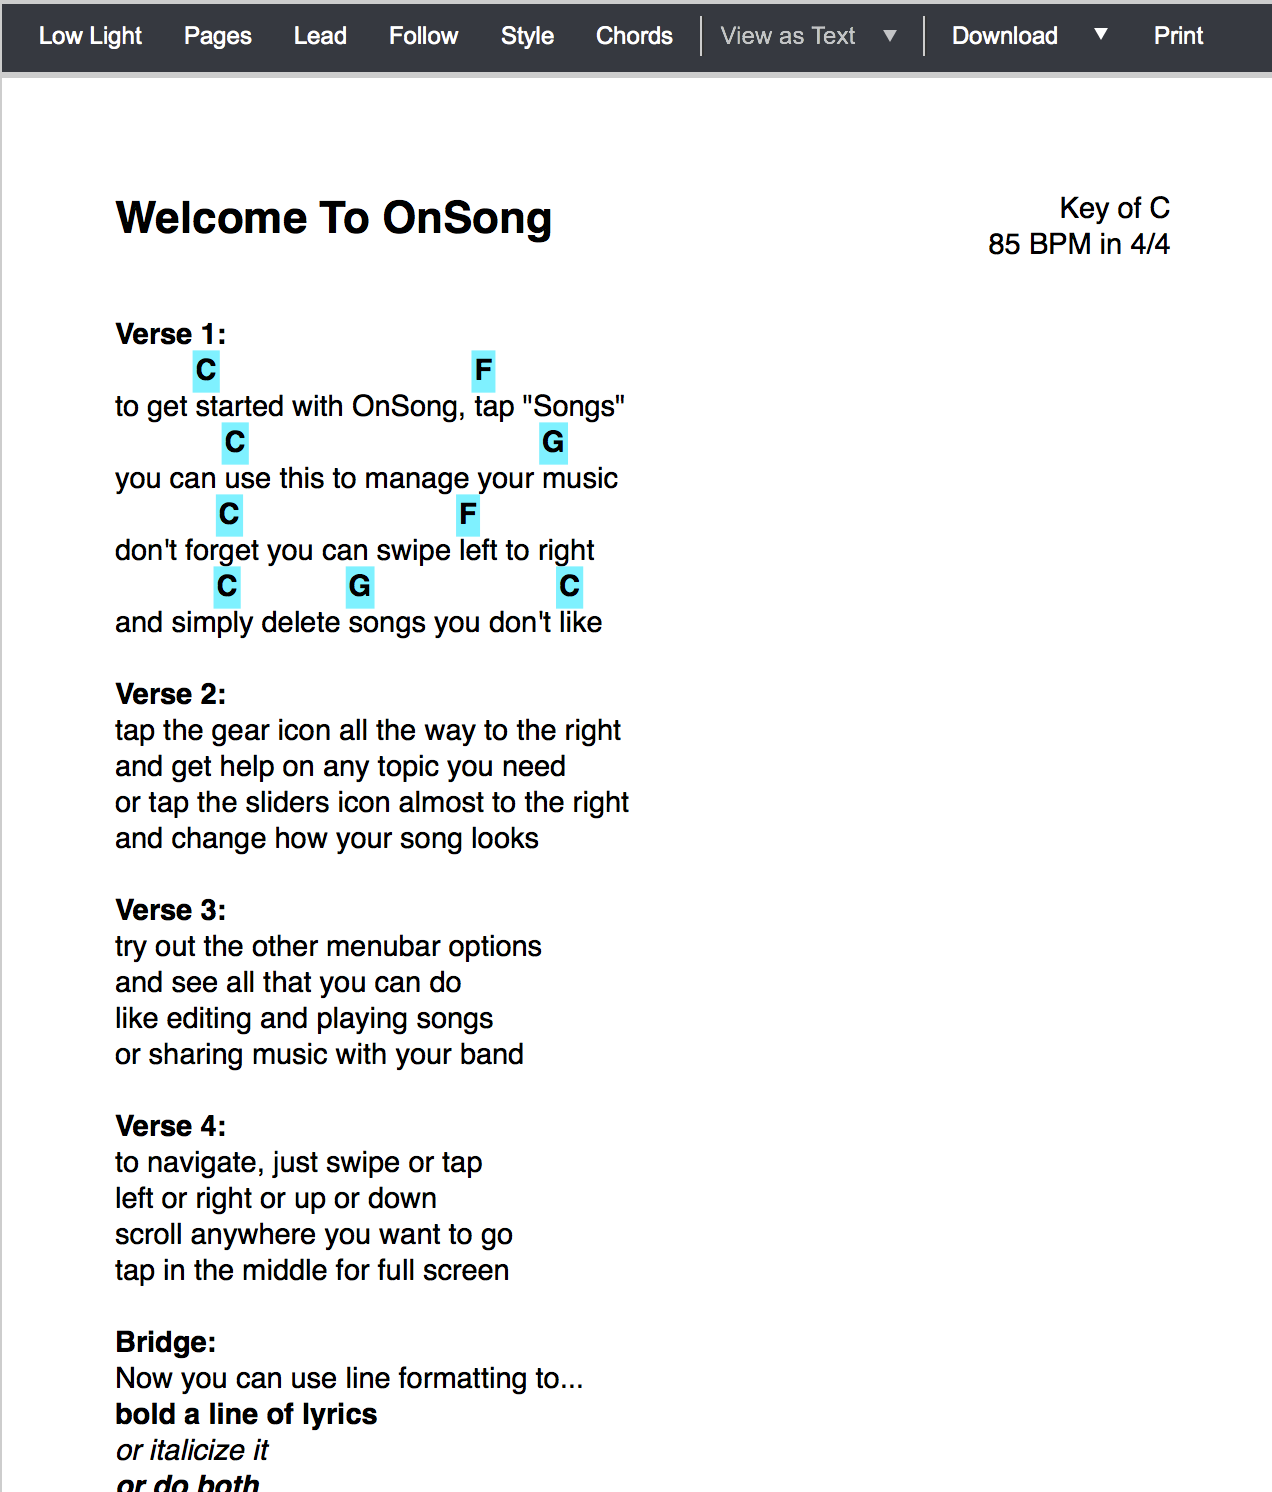 Onsong Entire Manual